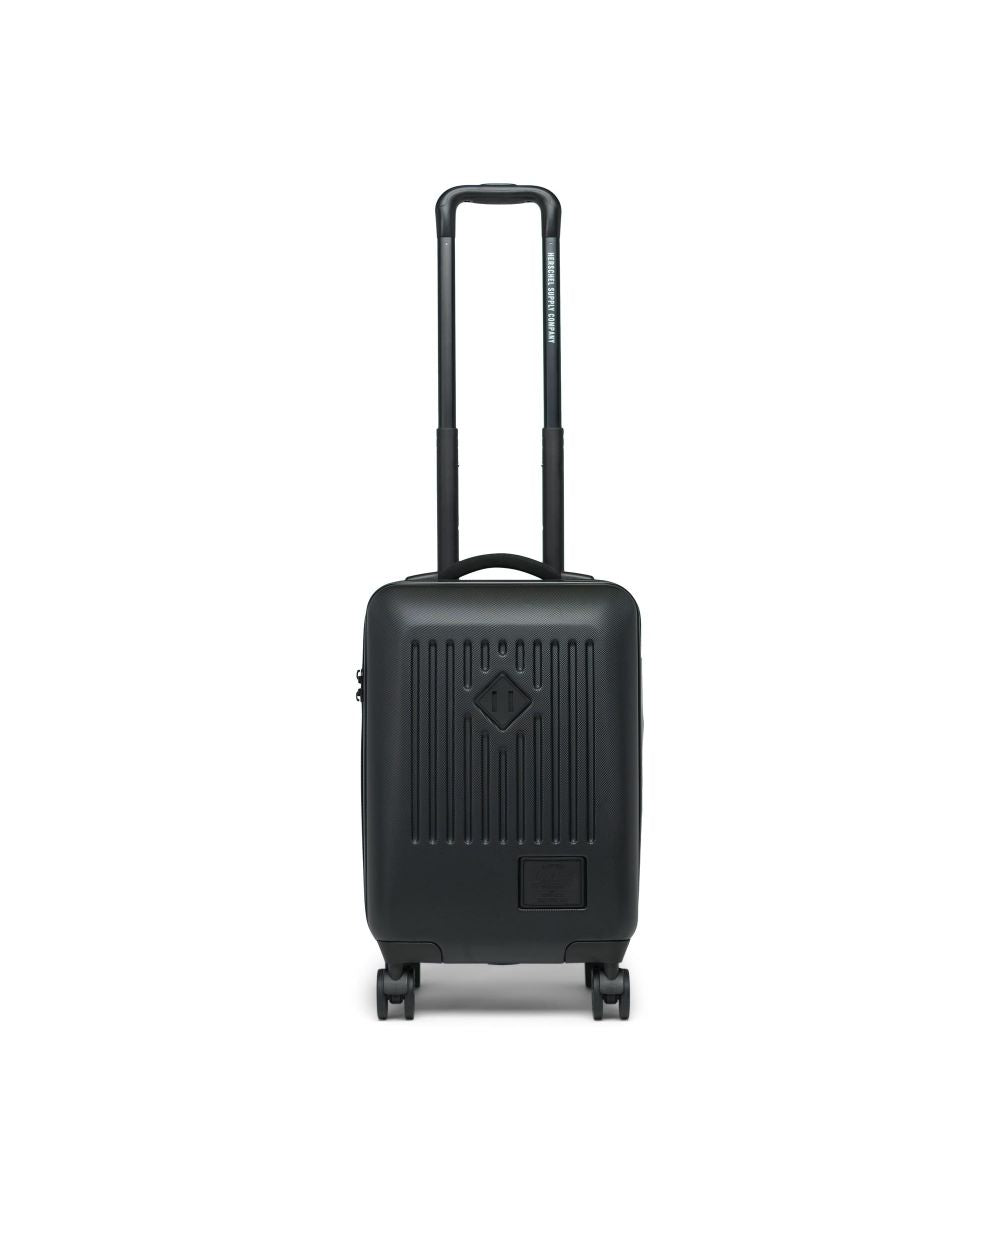 TRADE LUGGAGE CARRY-ON MALETA PEQUEÑA